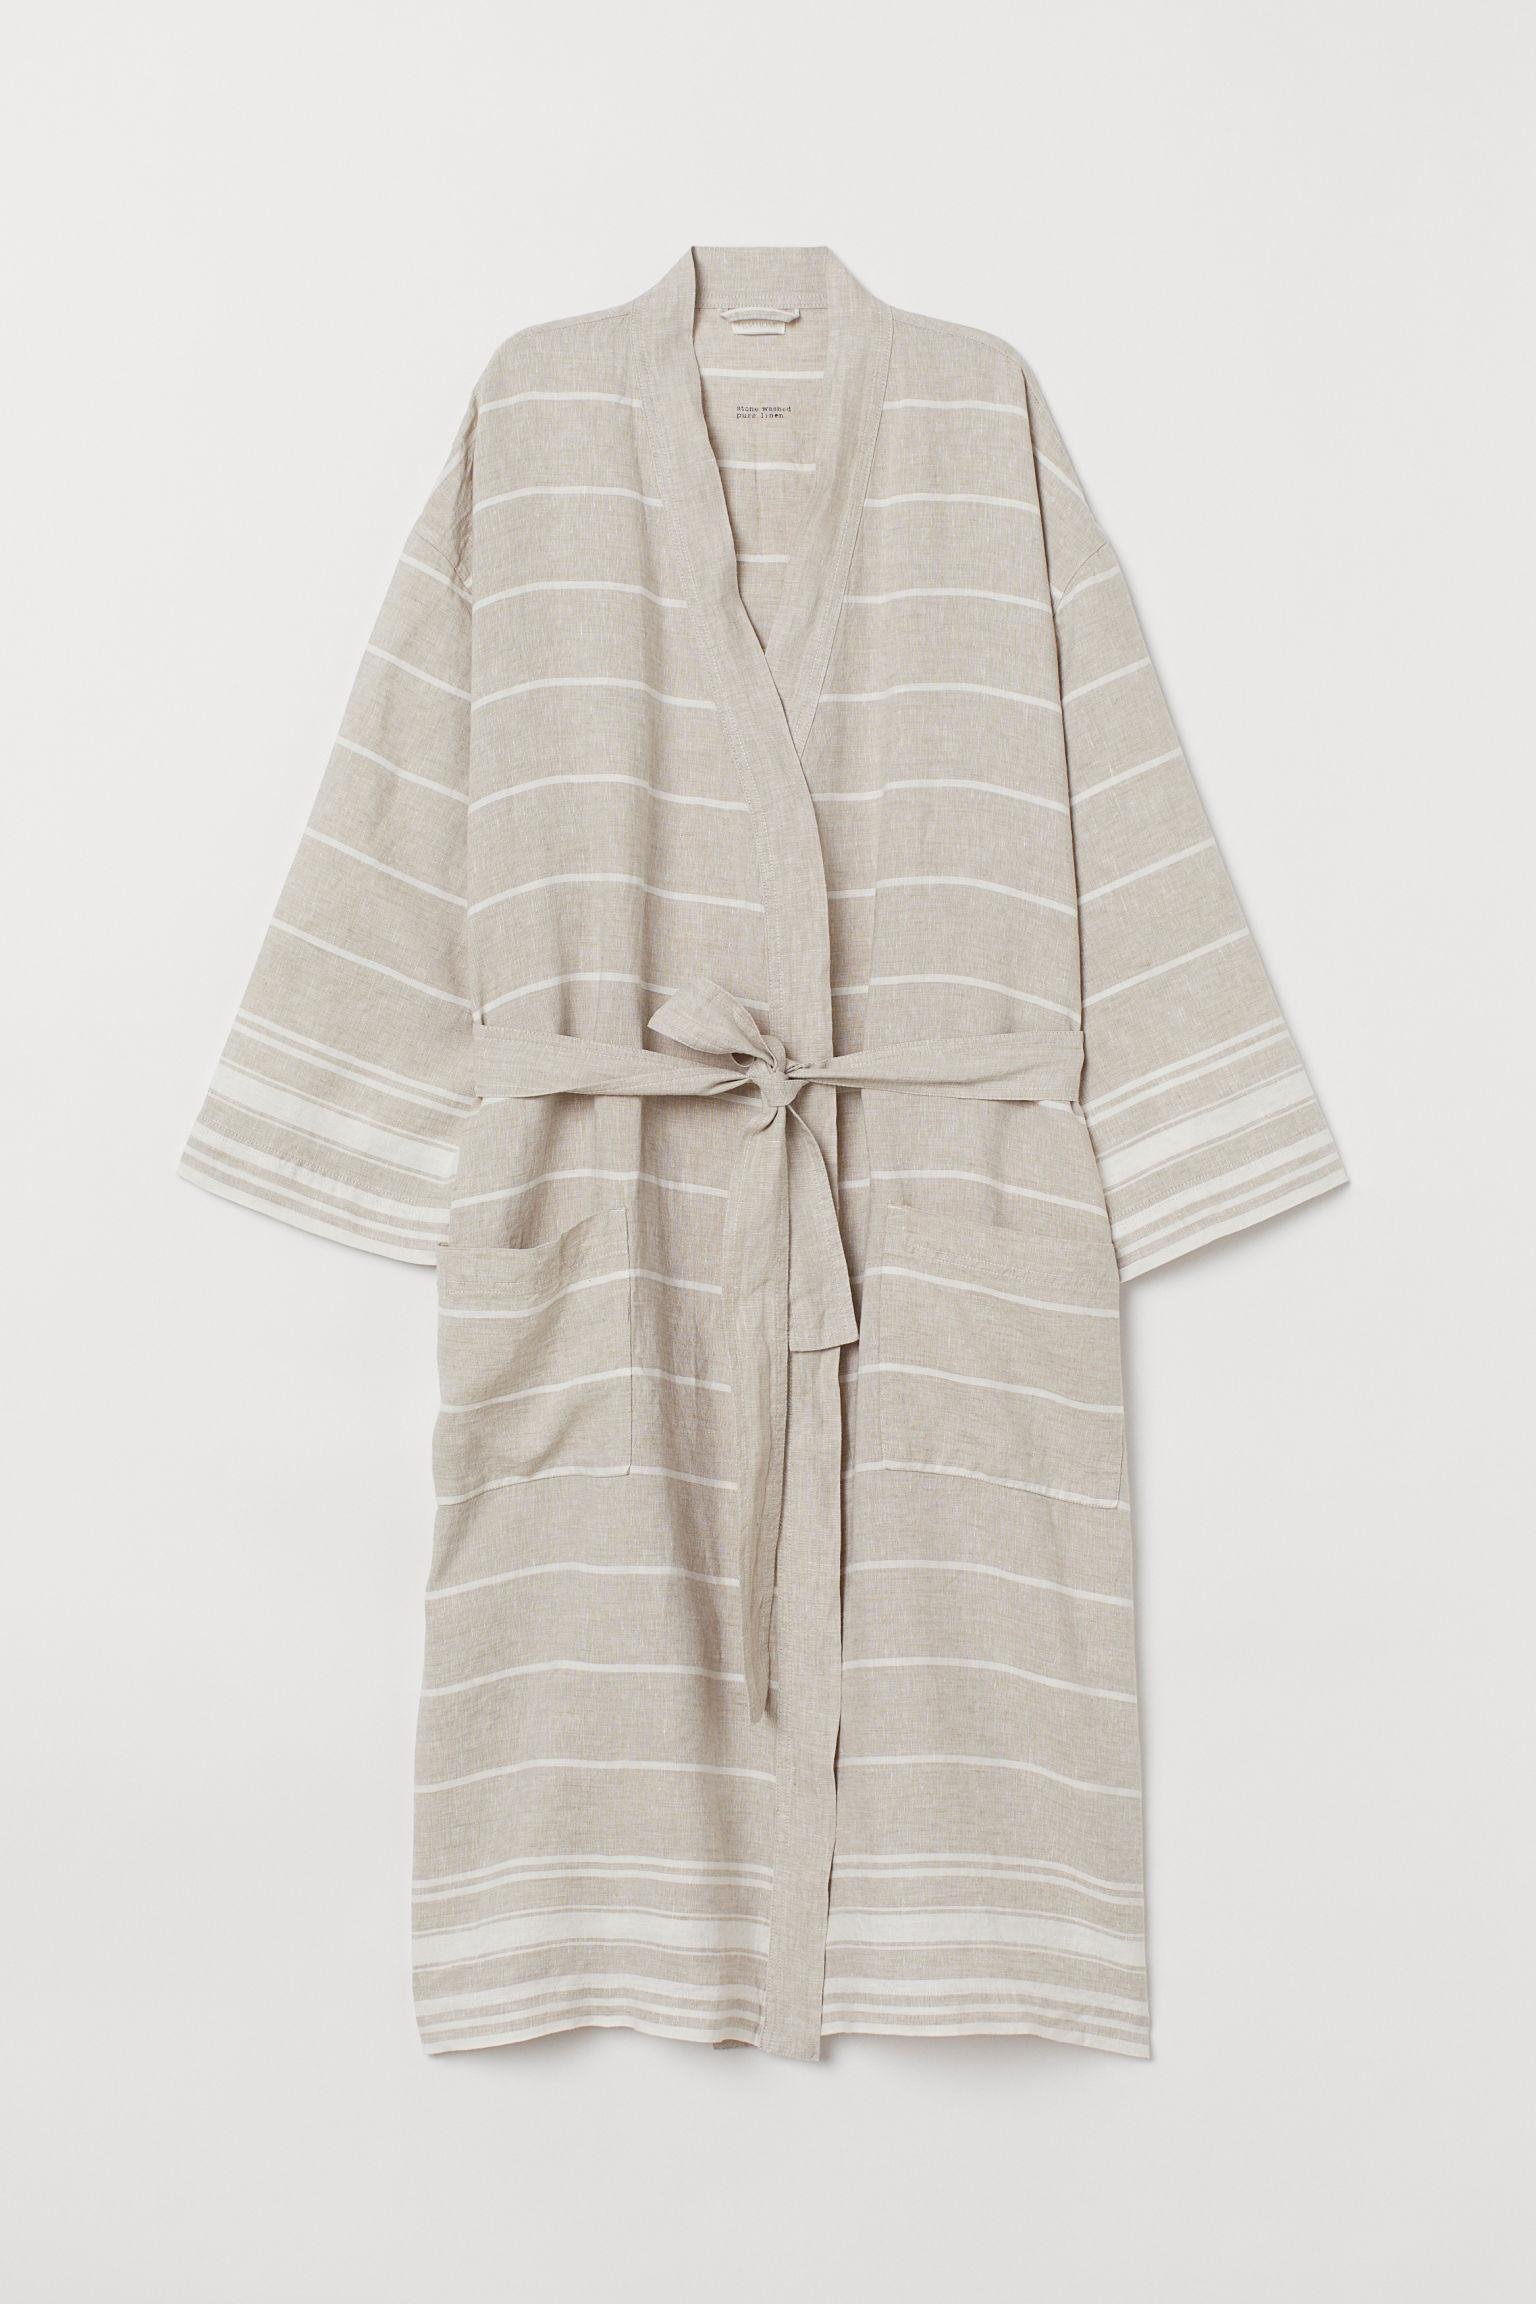 009564e7a7 H M Washed Linen Dressing Gown in Natural - Lyst